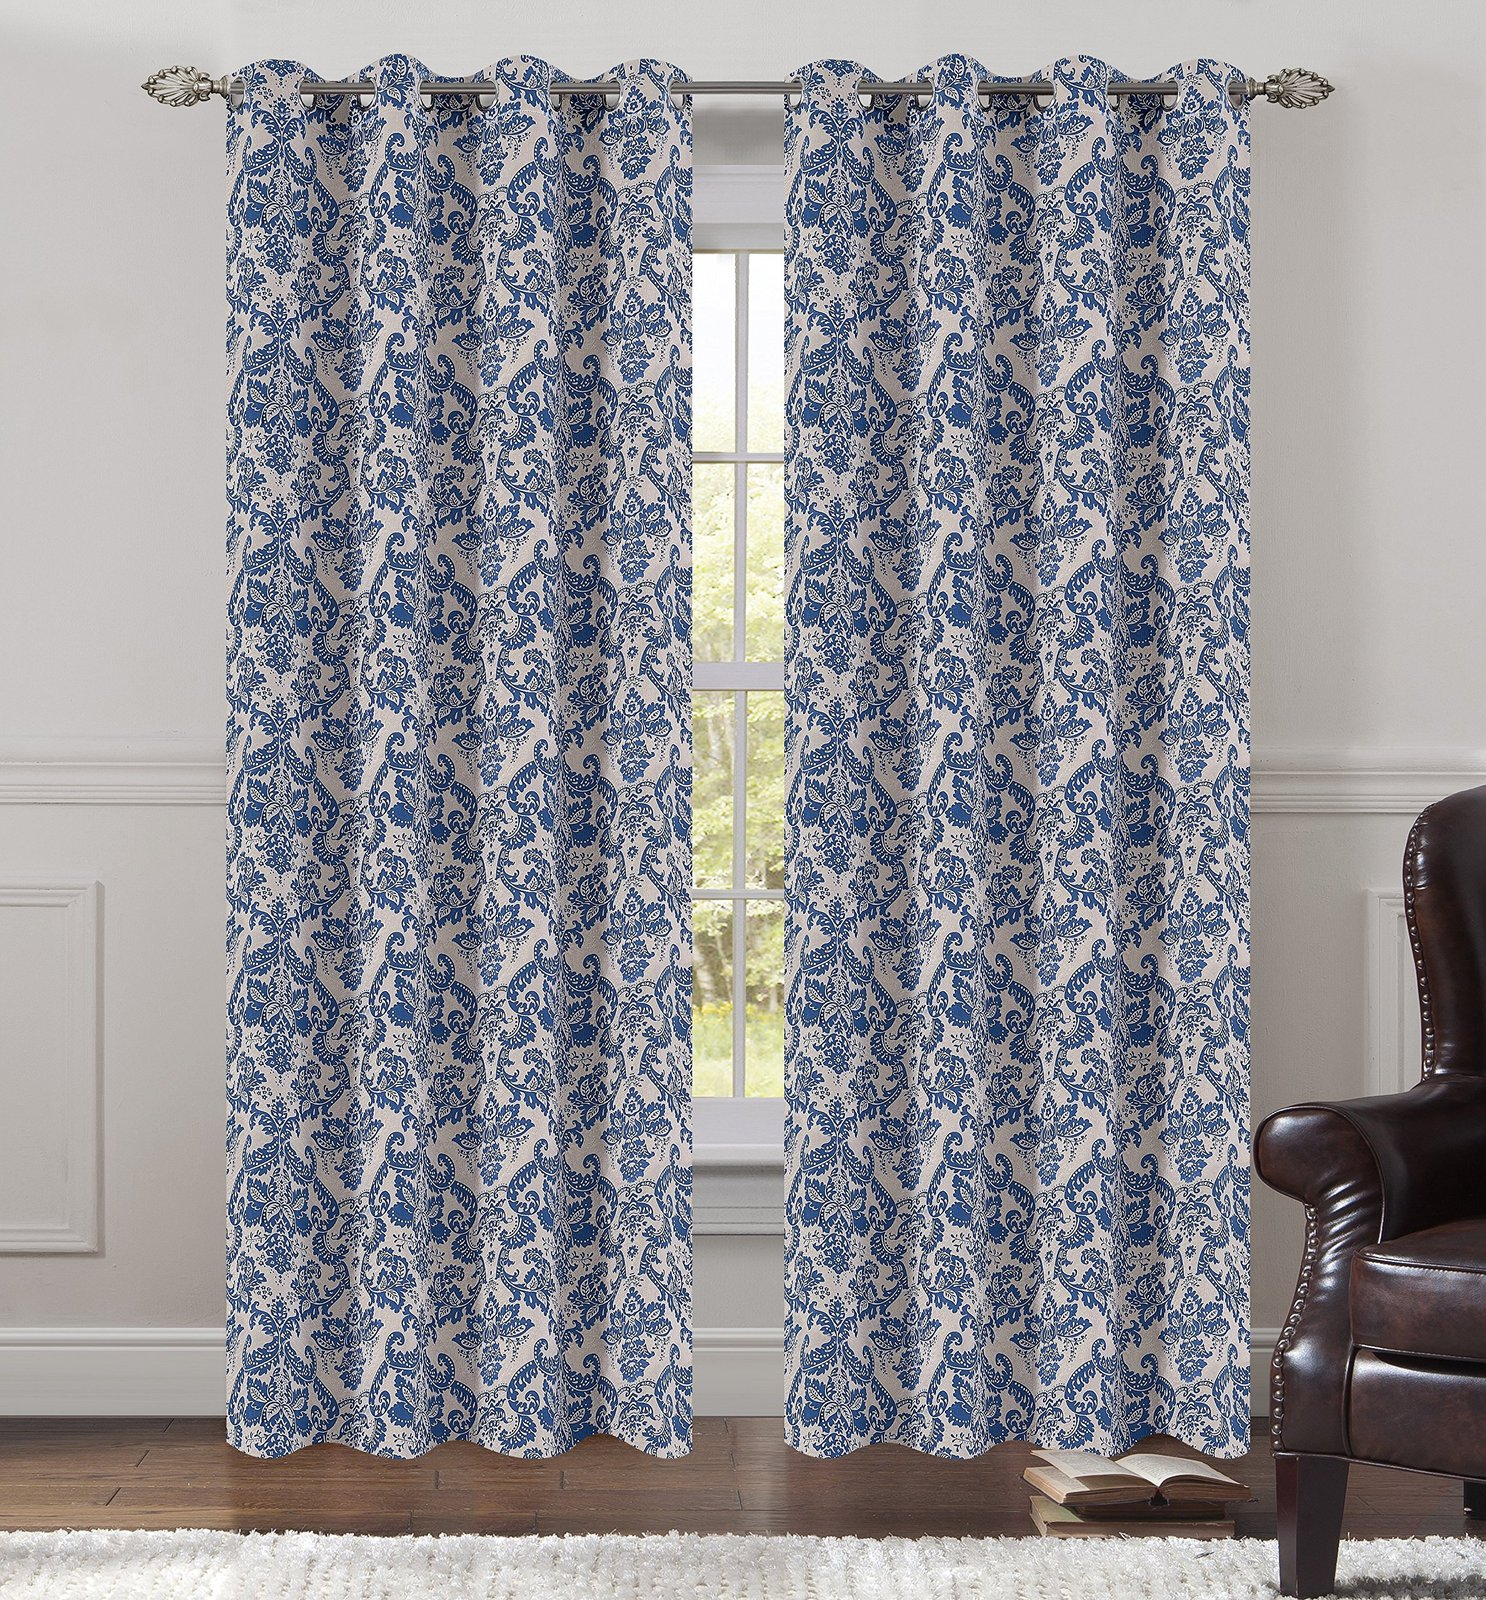 Urbanest 50-inch by 84-inch Set of 2 Jacquard Fern Drapery Curtain Panel with Gr image 3